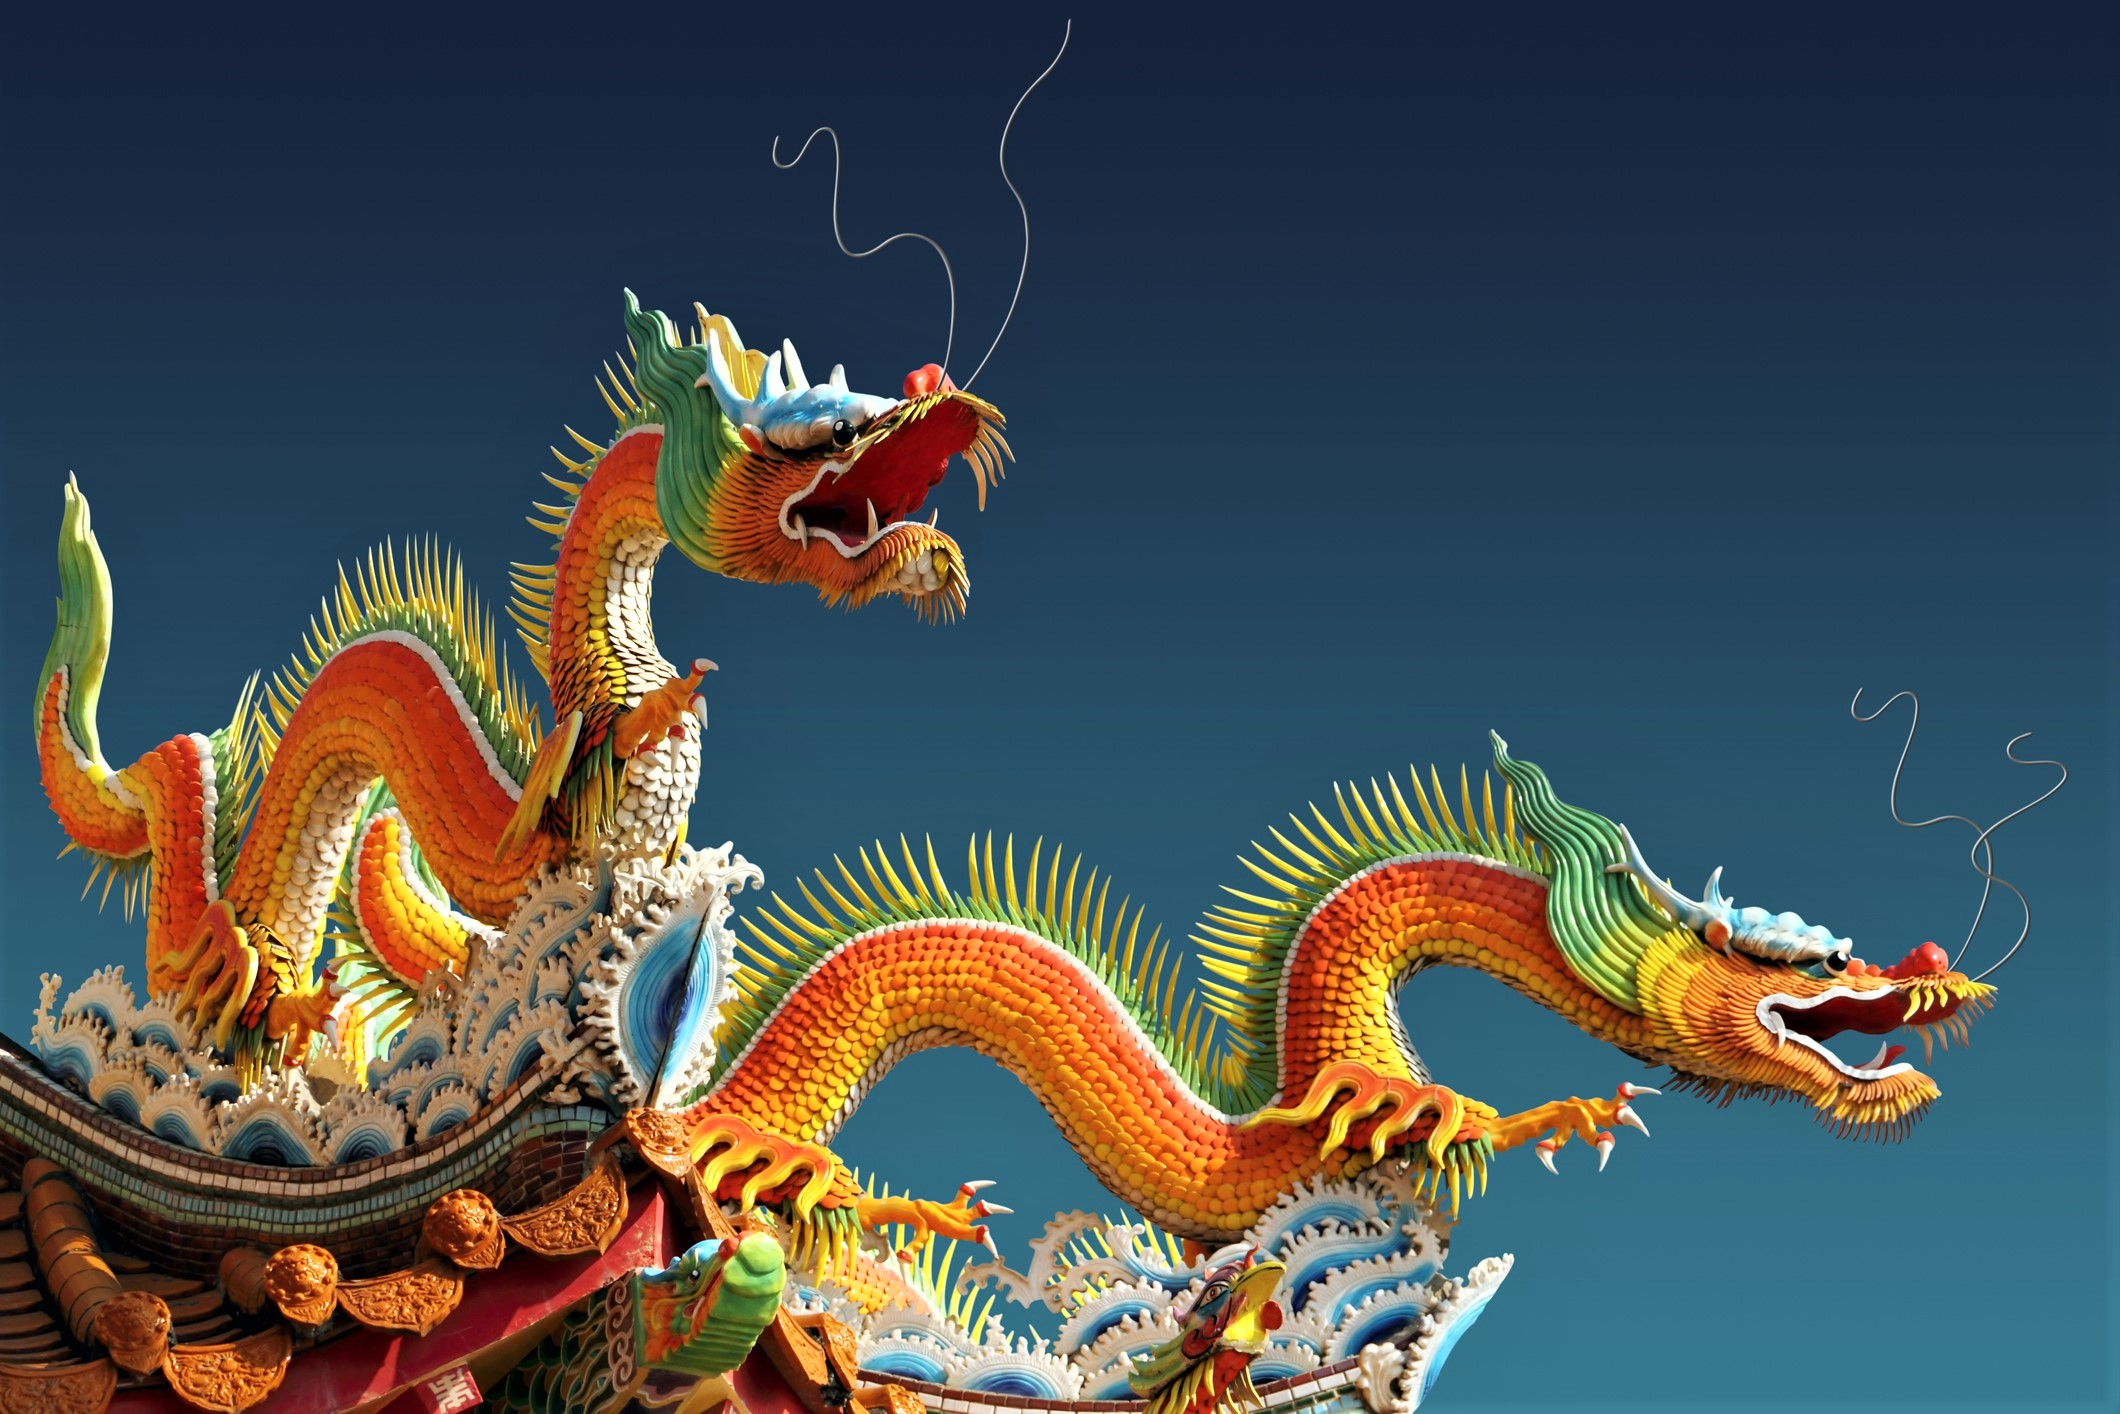 China to Slam Another Banhammer on Crypto - Report